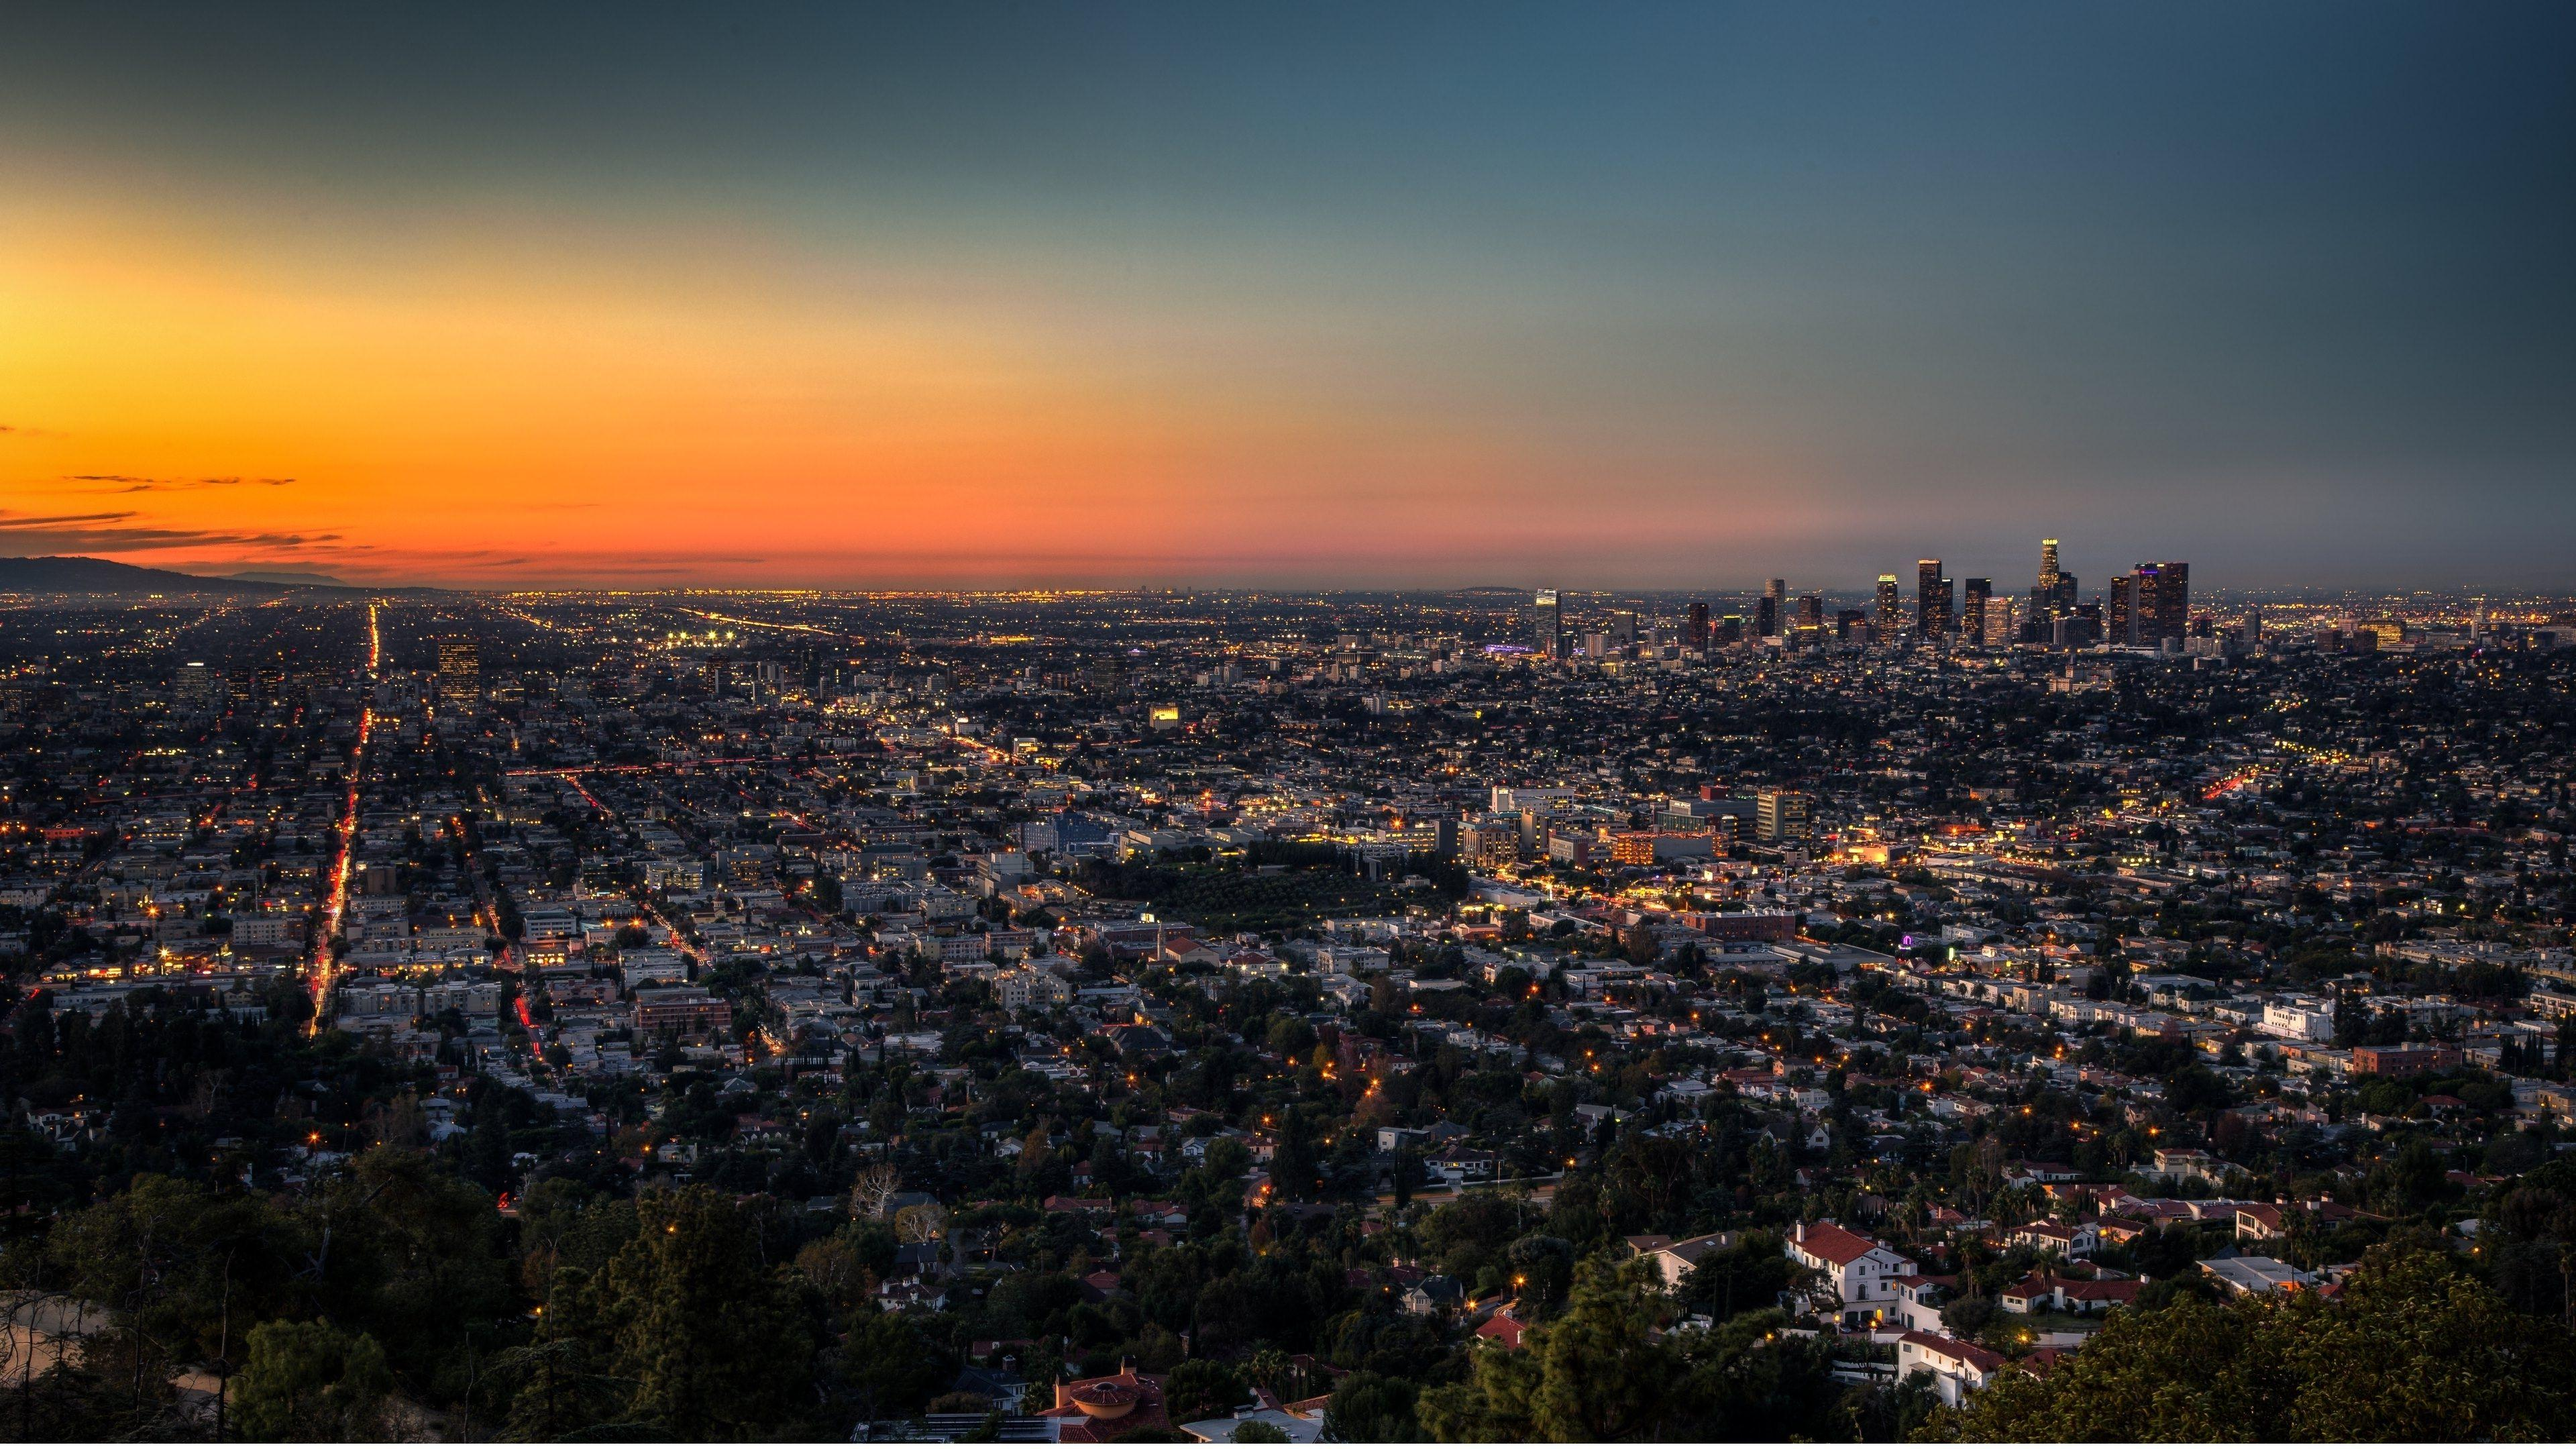 Los Angeles Wallpapers - Wallpapers High Definition